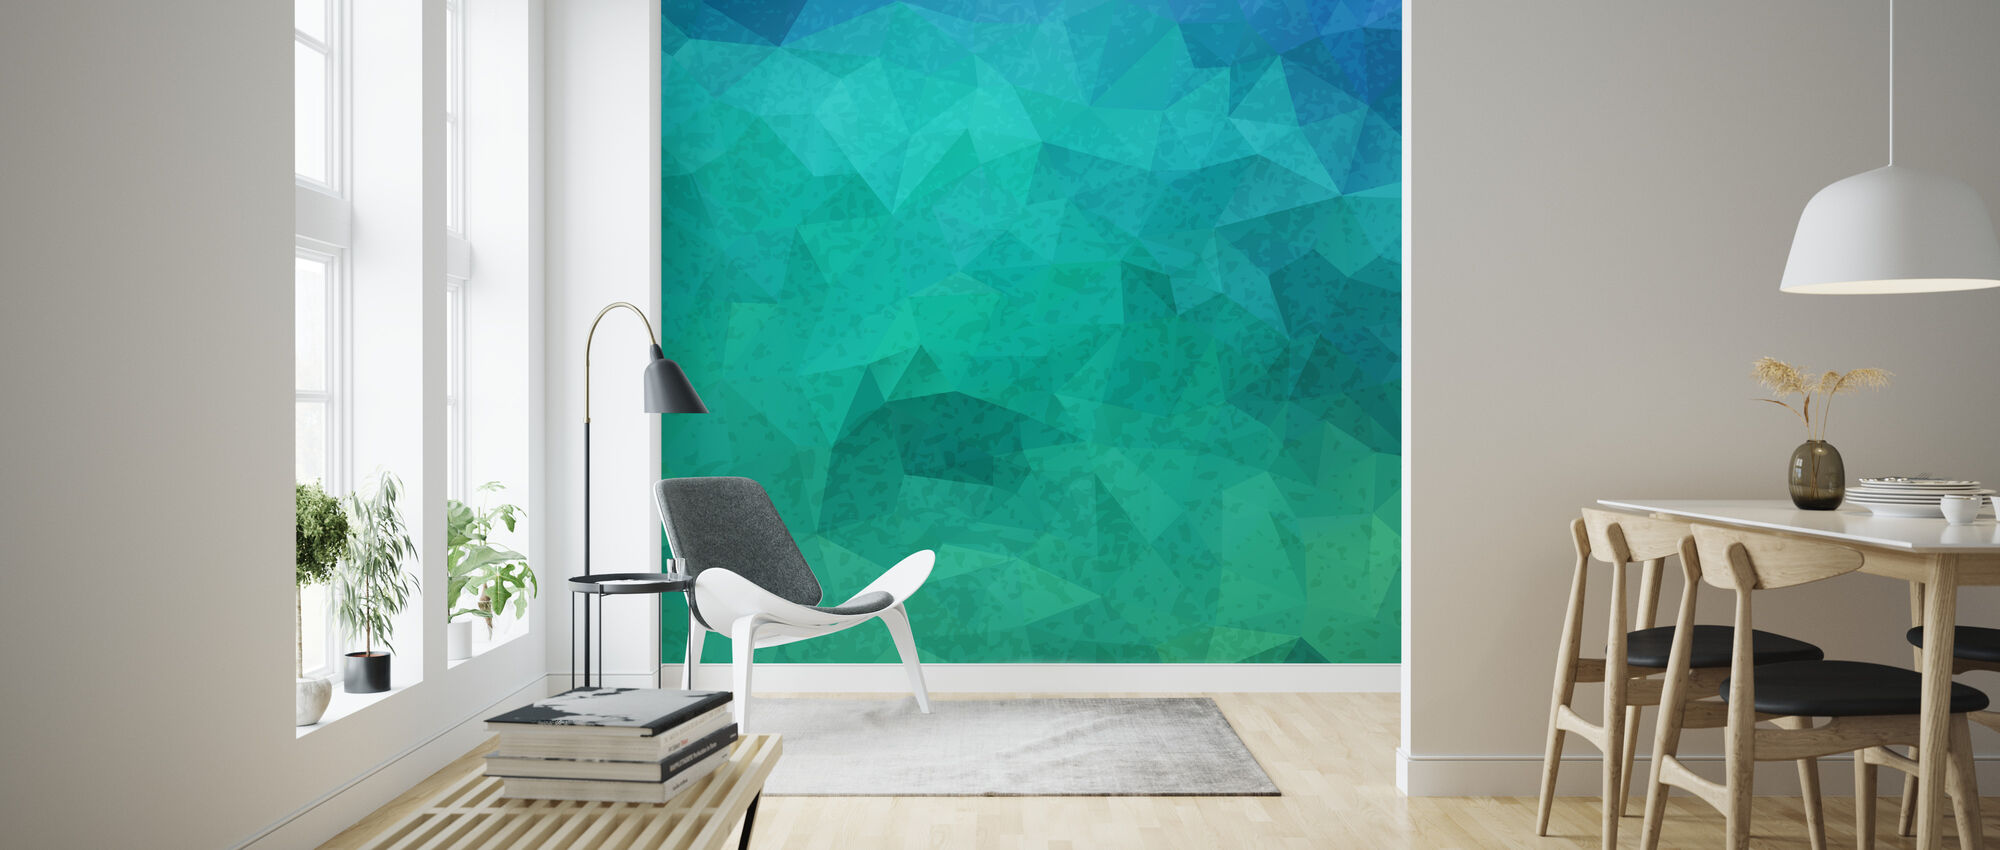 Geometric Hipster - Wallpaper - Living Room